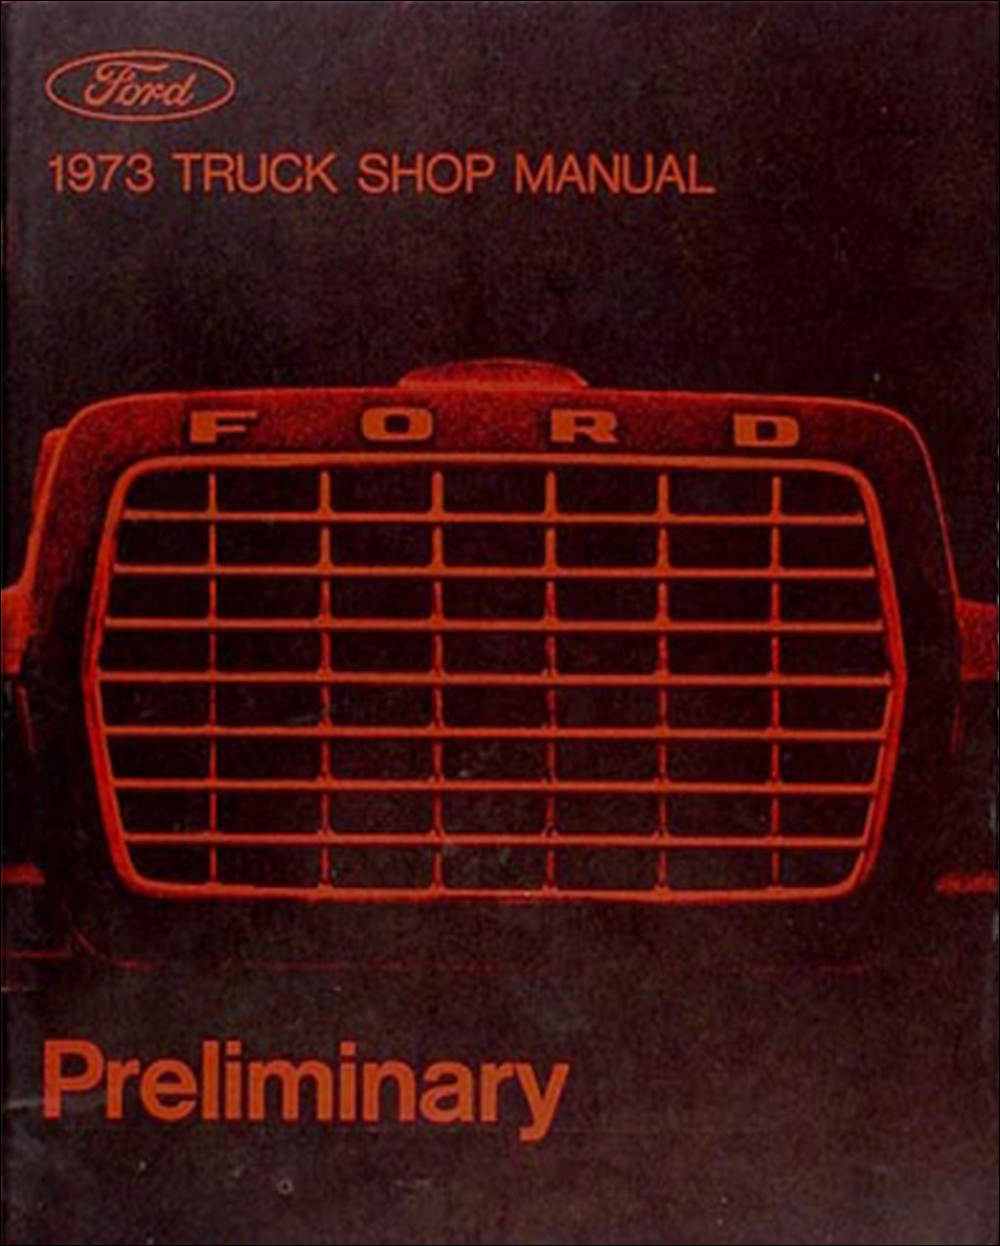 Search 1989 Ford Truck Cab Foldout Wiring Diagram F600 F700 F800 Ft800 1973 Preliminary Shop Manual Original